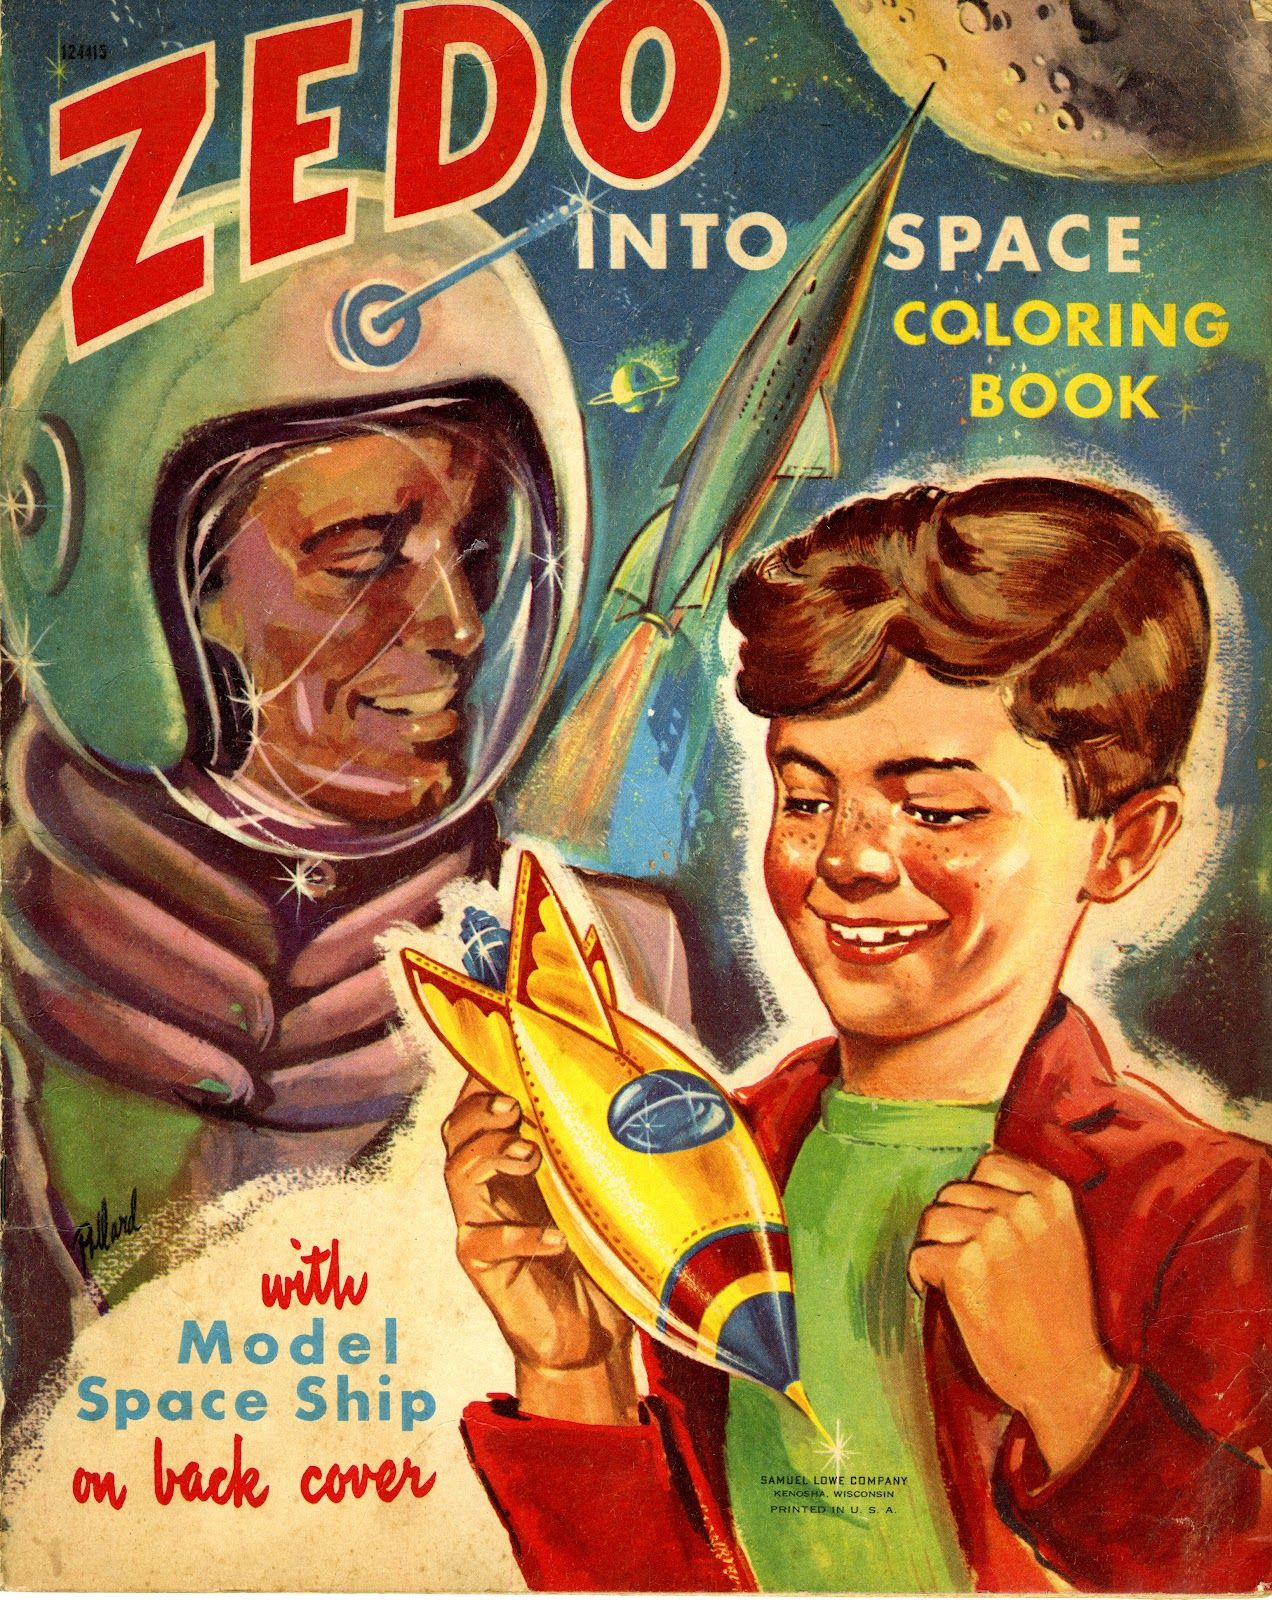 Coloring Book Space Books Vintage Coloring Books Retro Futurism